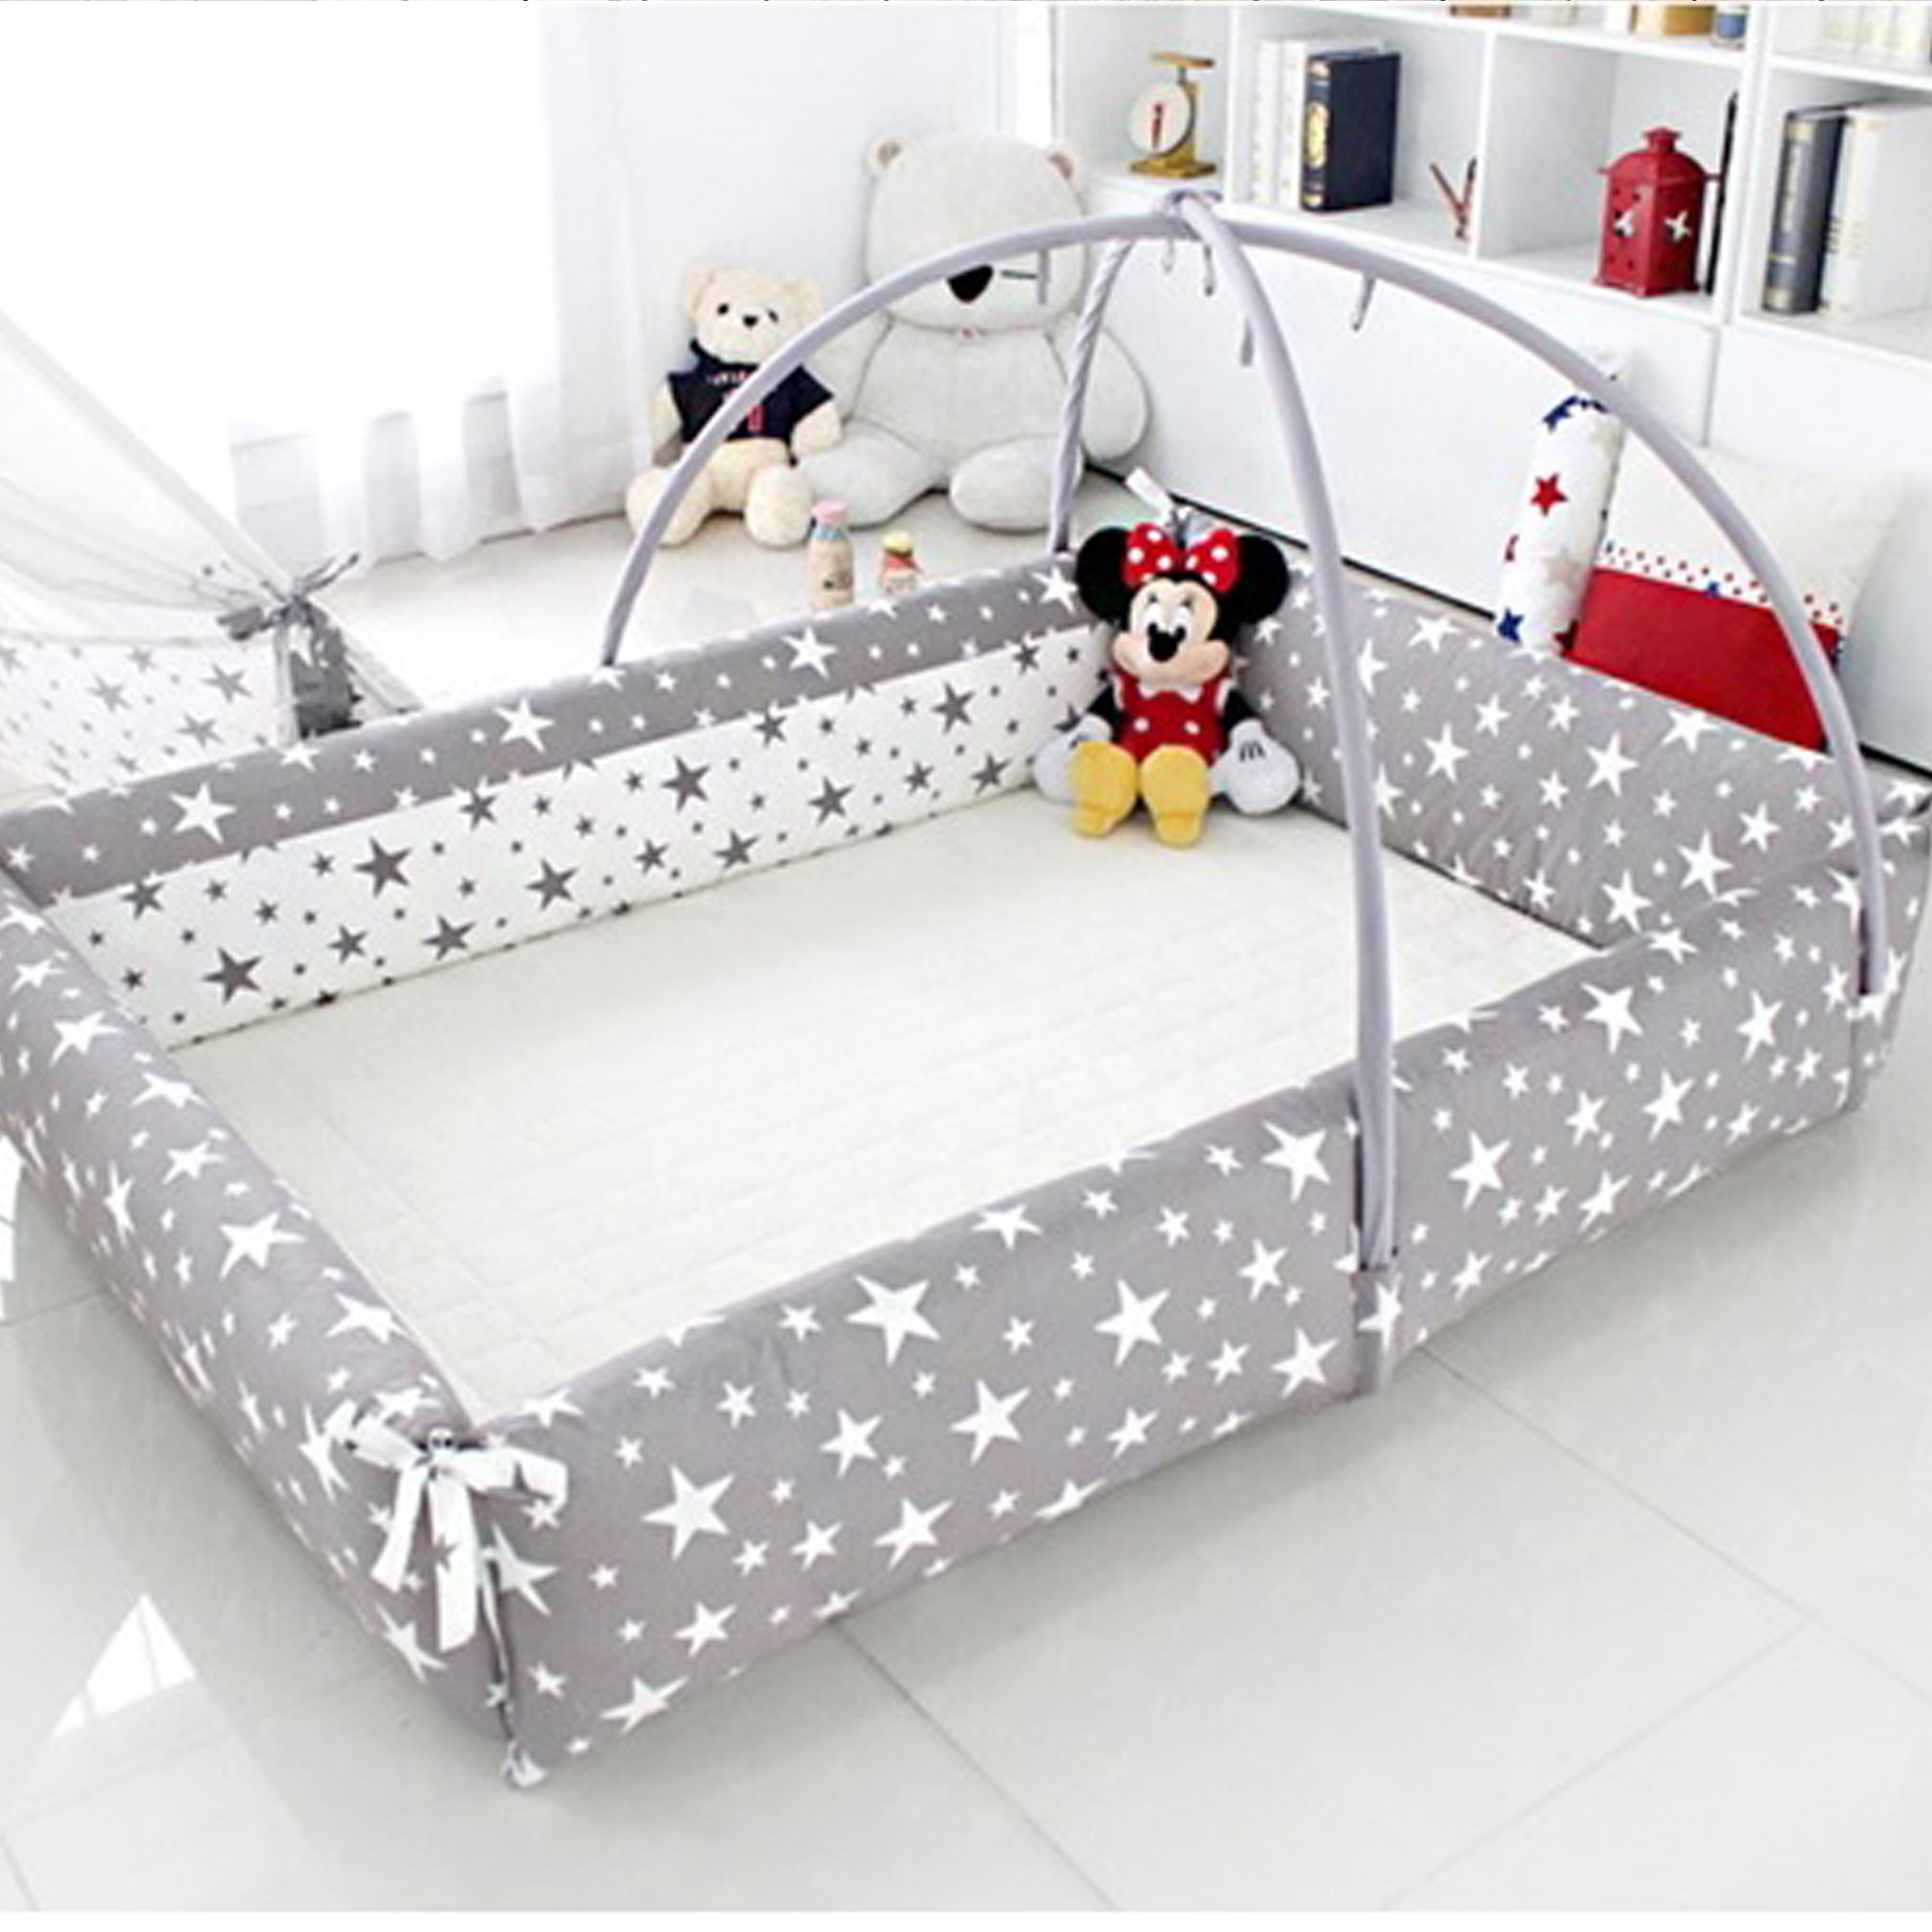 AGUARD 1 FOR 1 BUMPER BED DEAL - Twinkle